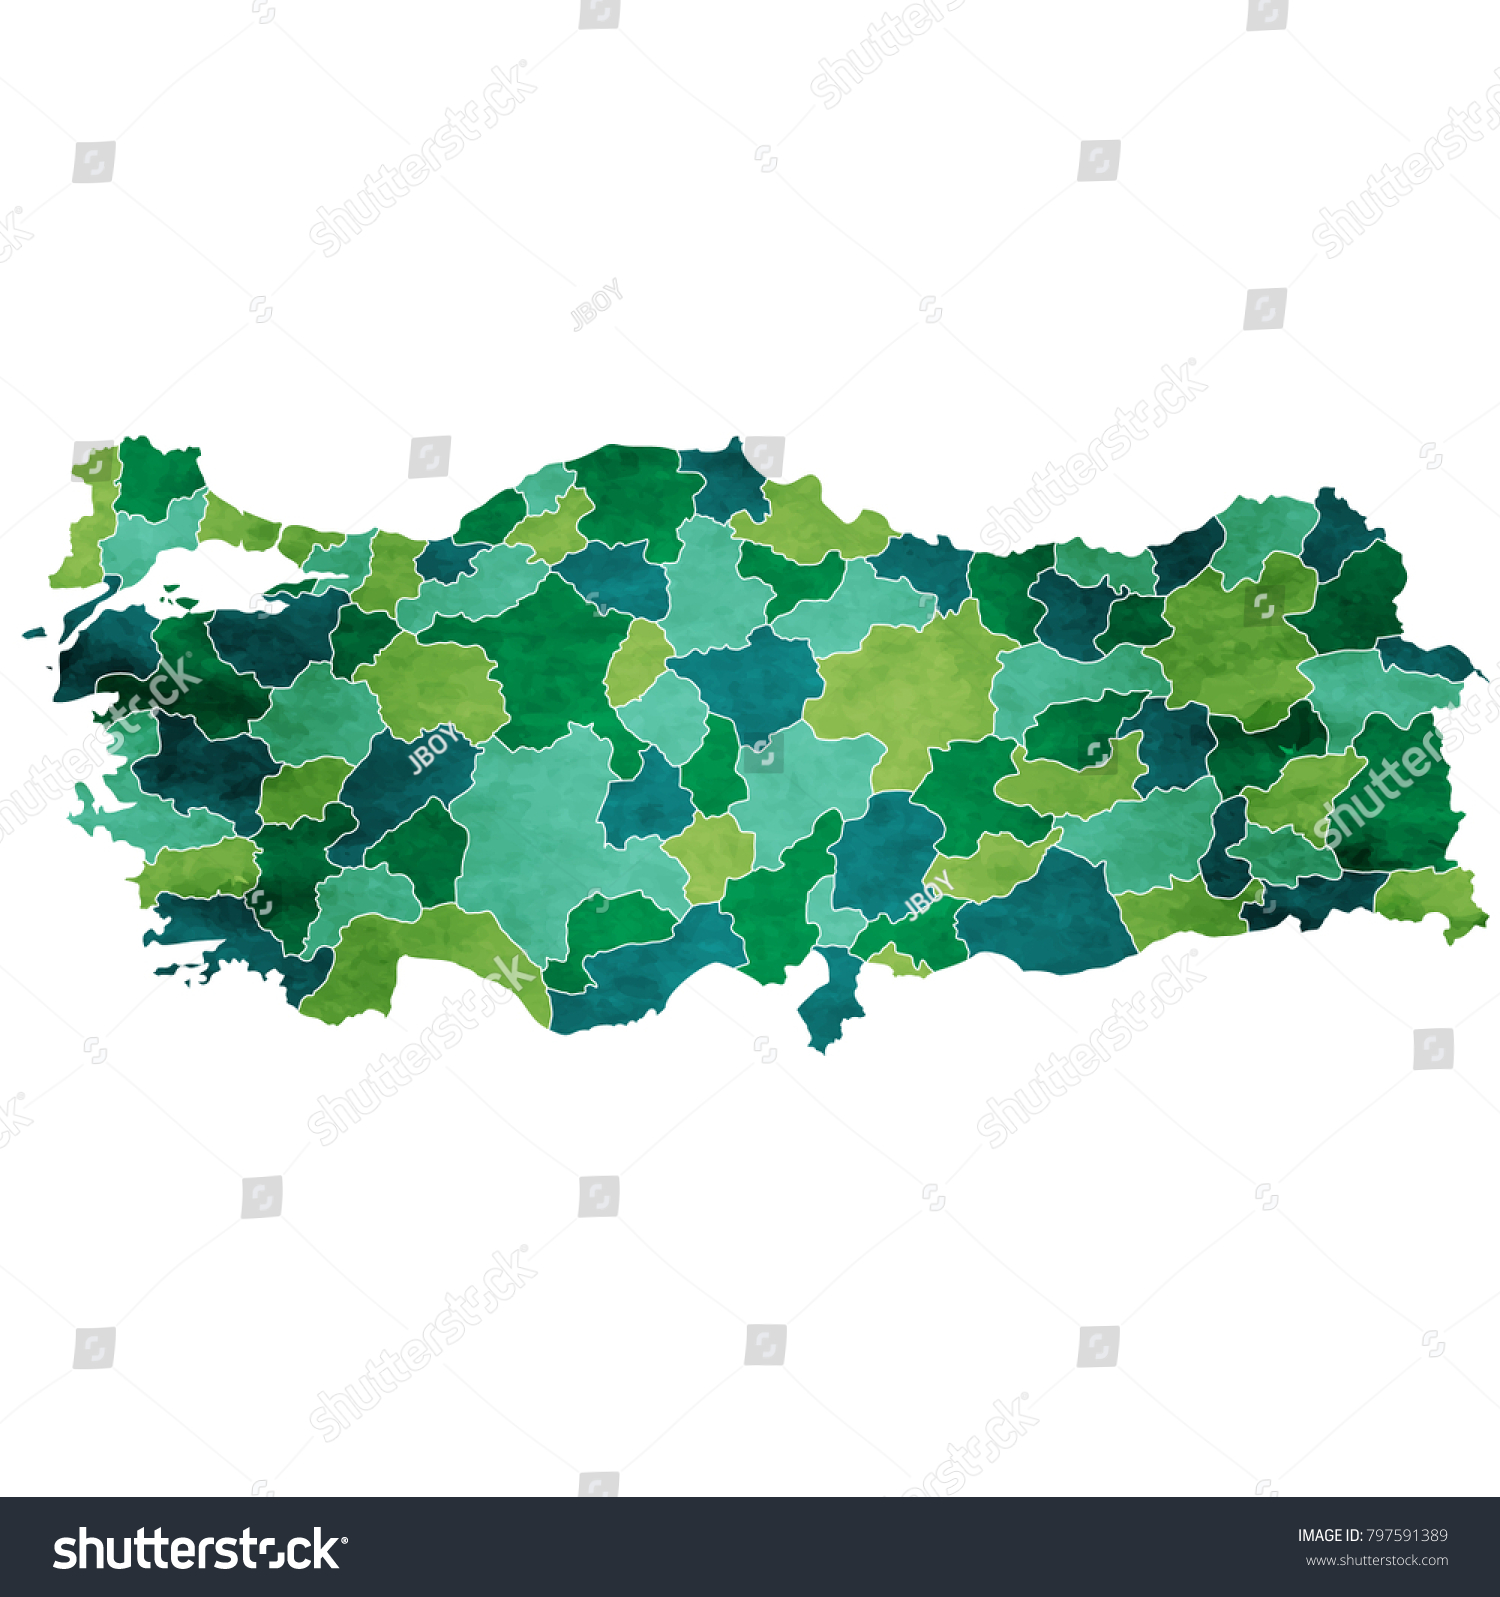 Turkey world map country icon stock vector 797591389 shutterstock turkey world map country icon gumiabroncs Images